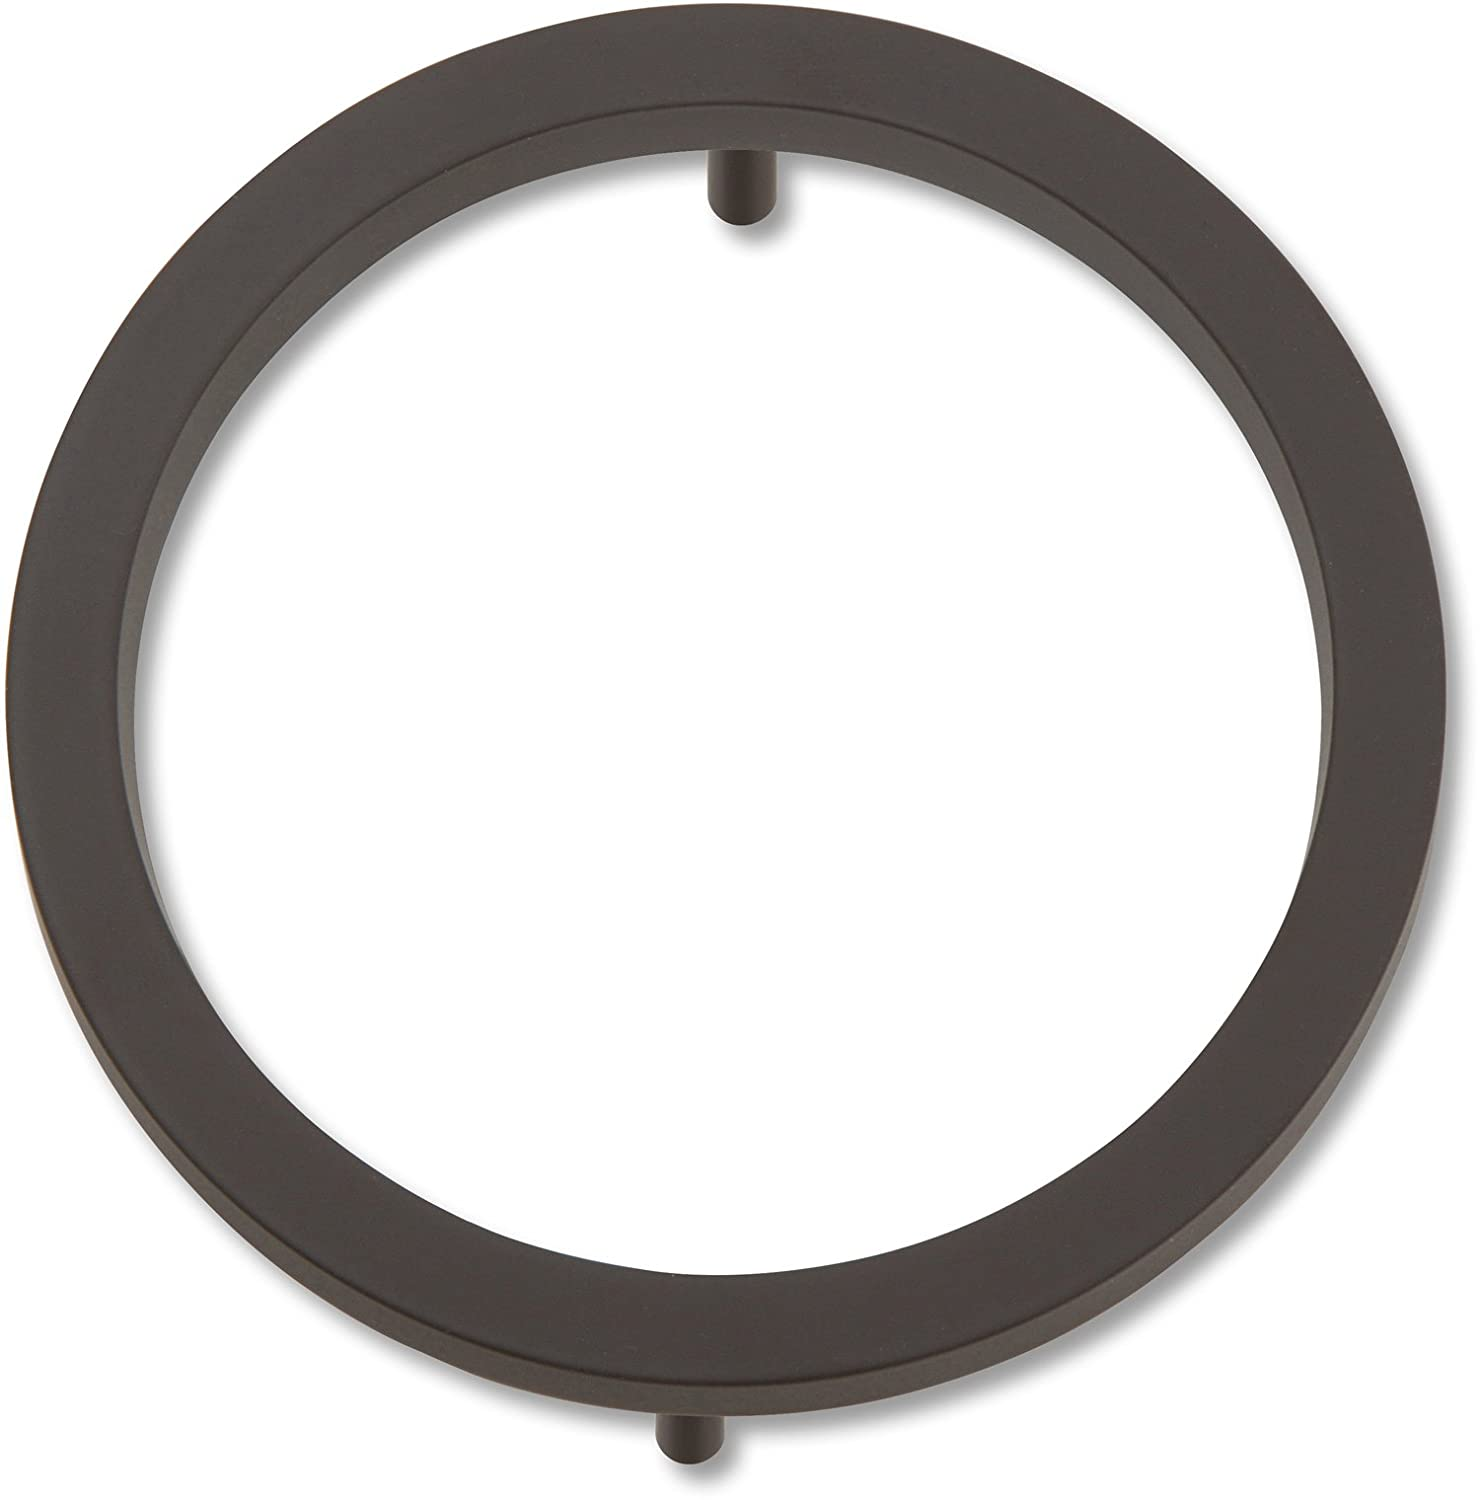 Atlas Homewares AVN0-O Modern Avalon 4.5-Inch No. 0 House Number, Oil Rubbed Bronze